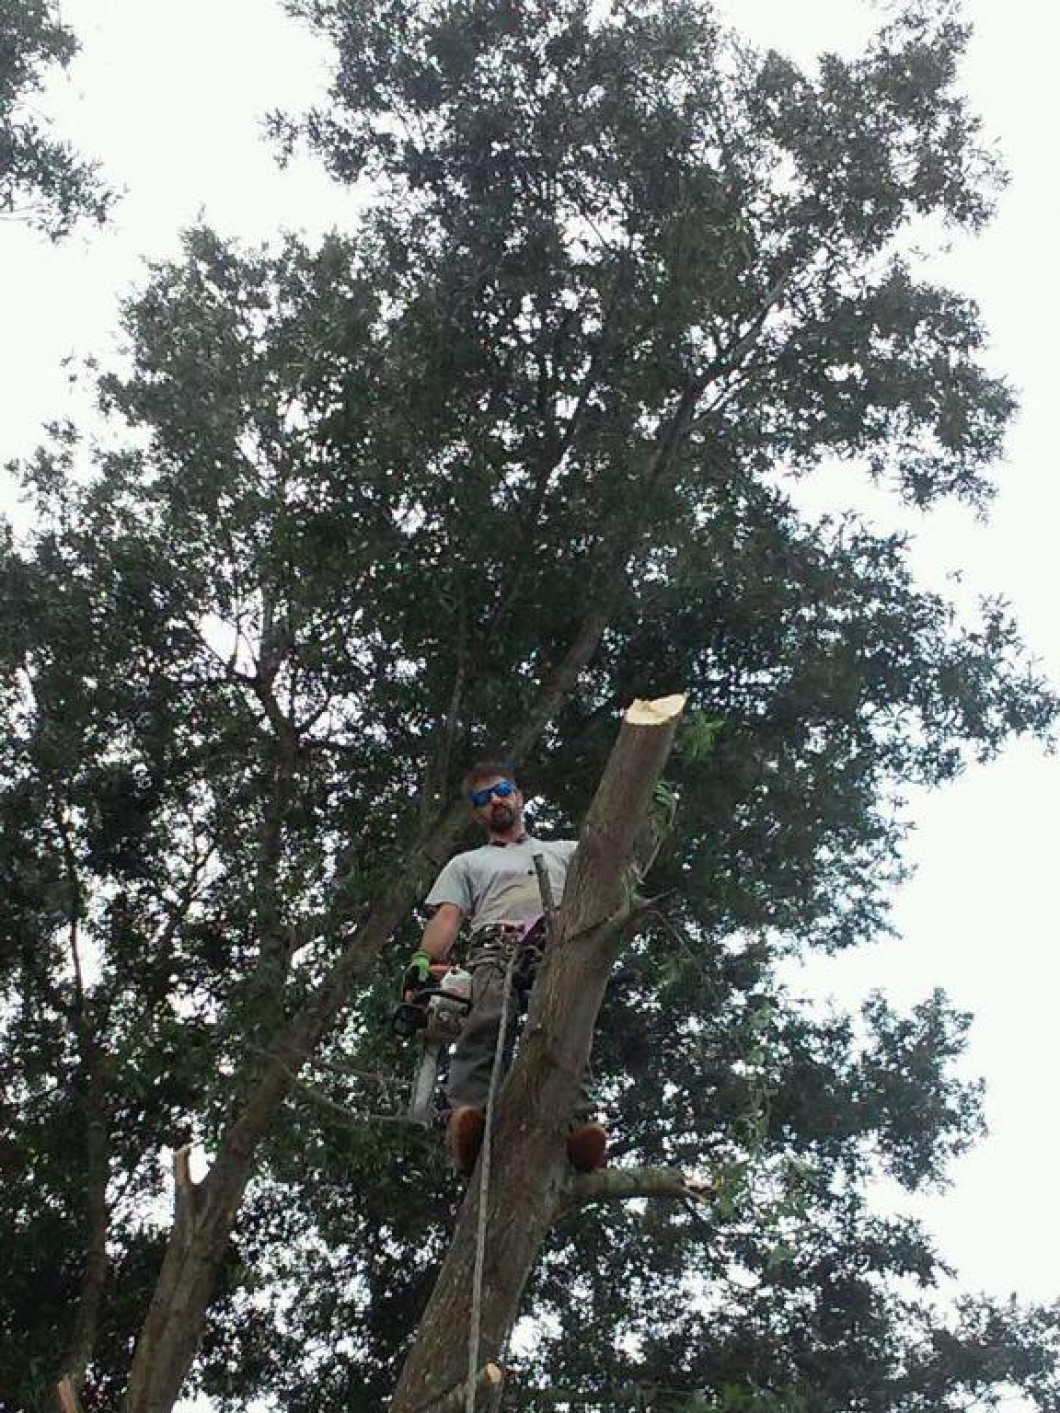 Branch out with Karney's Tree Services